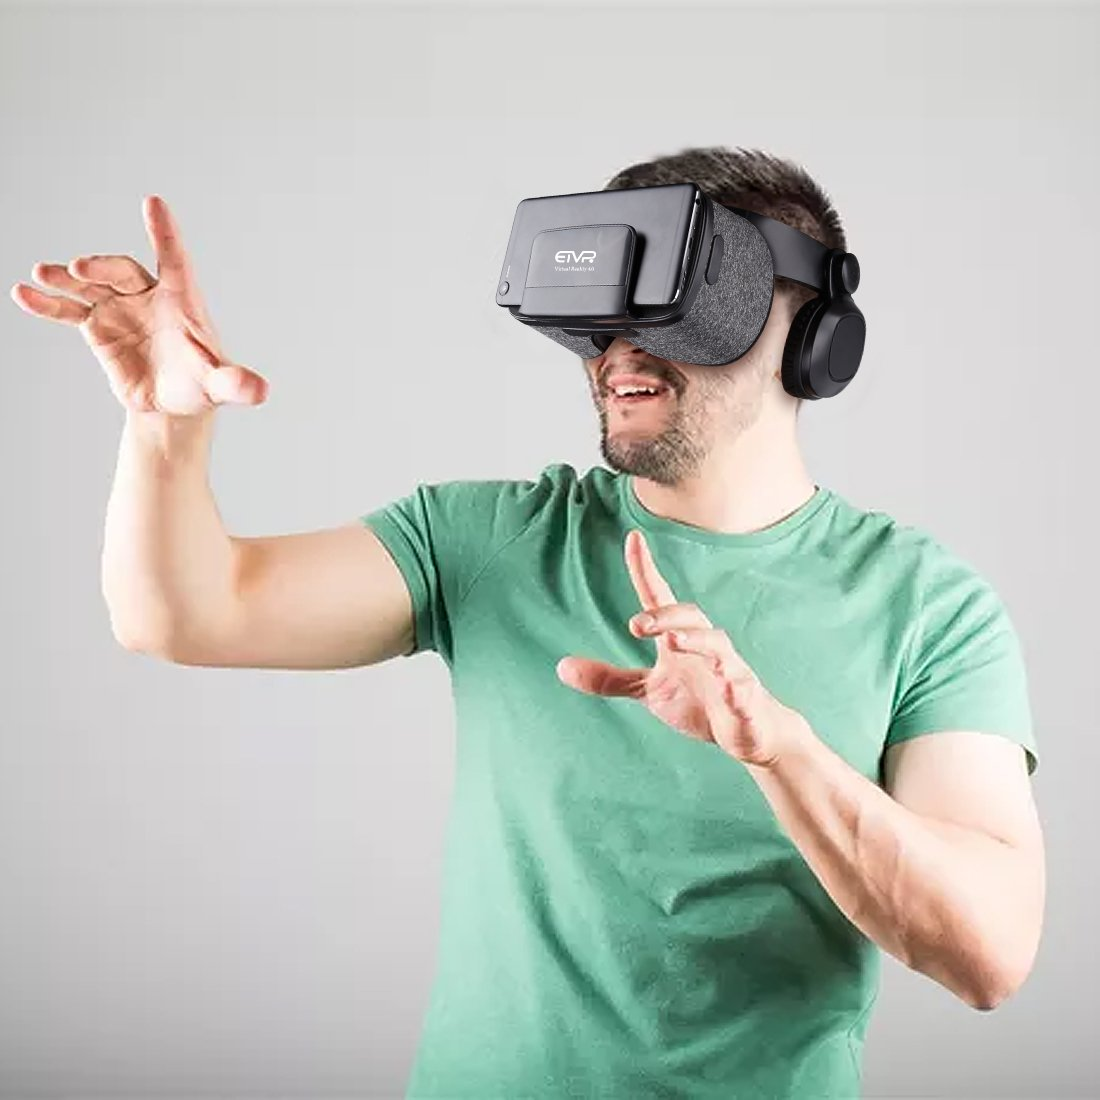 Ultralight Virtual Reality Headset with Stereo Headphones, 3D VR Glasses for VR games & 3D Movies, Comfortable & Immersive Experience VR Goggles for 4.7 - 6 inch IOS/Android Smartphones by geek-2016 (Image #7)